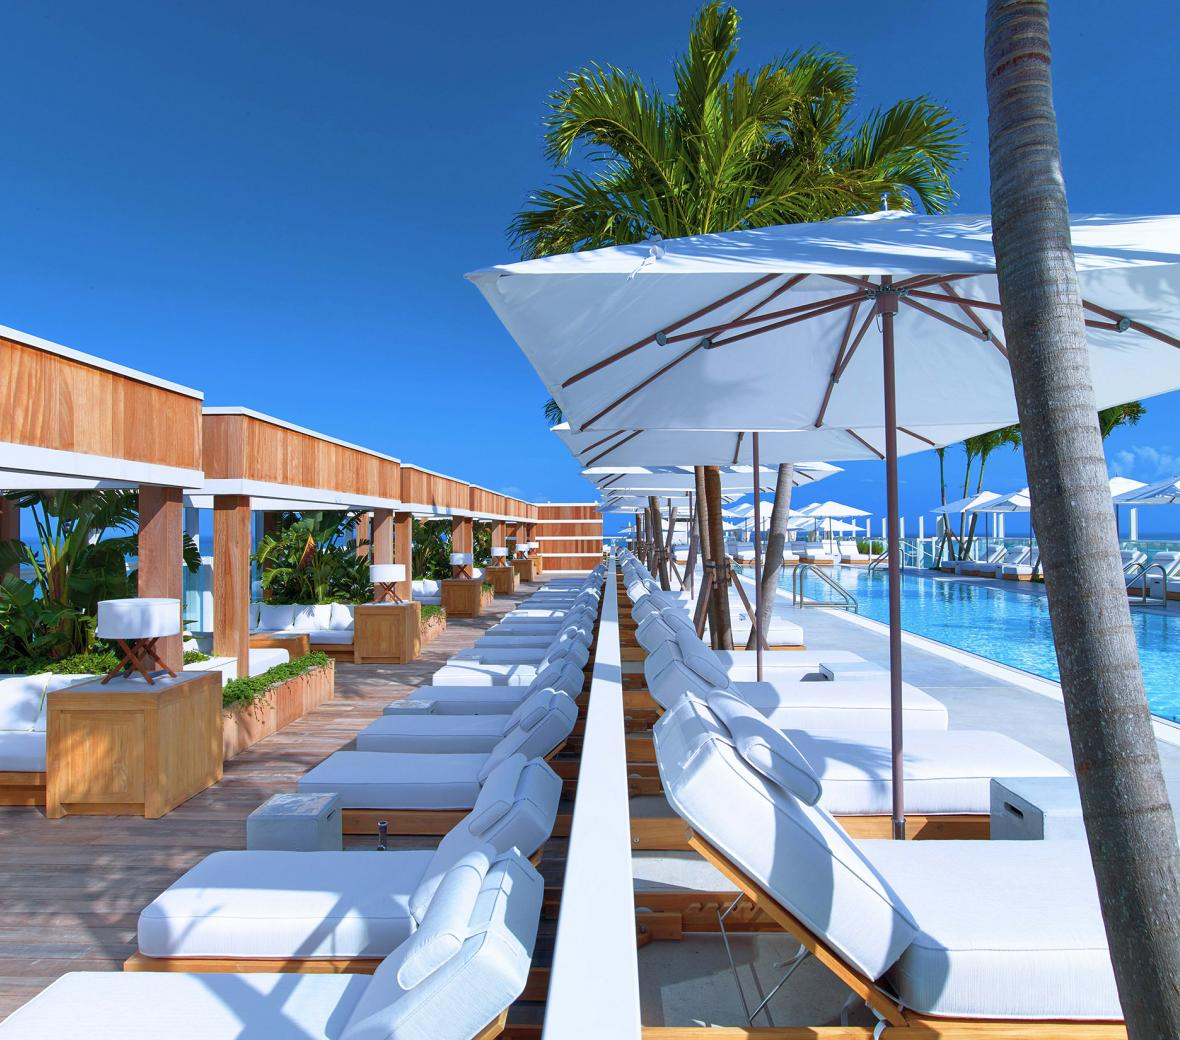 Pool-side cabanas at 1 Hotel South Beach in Miami, Florida.